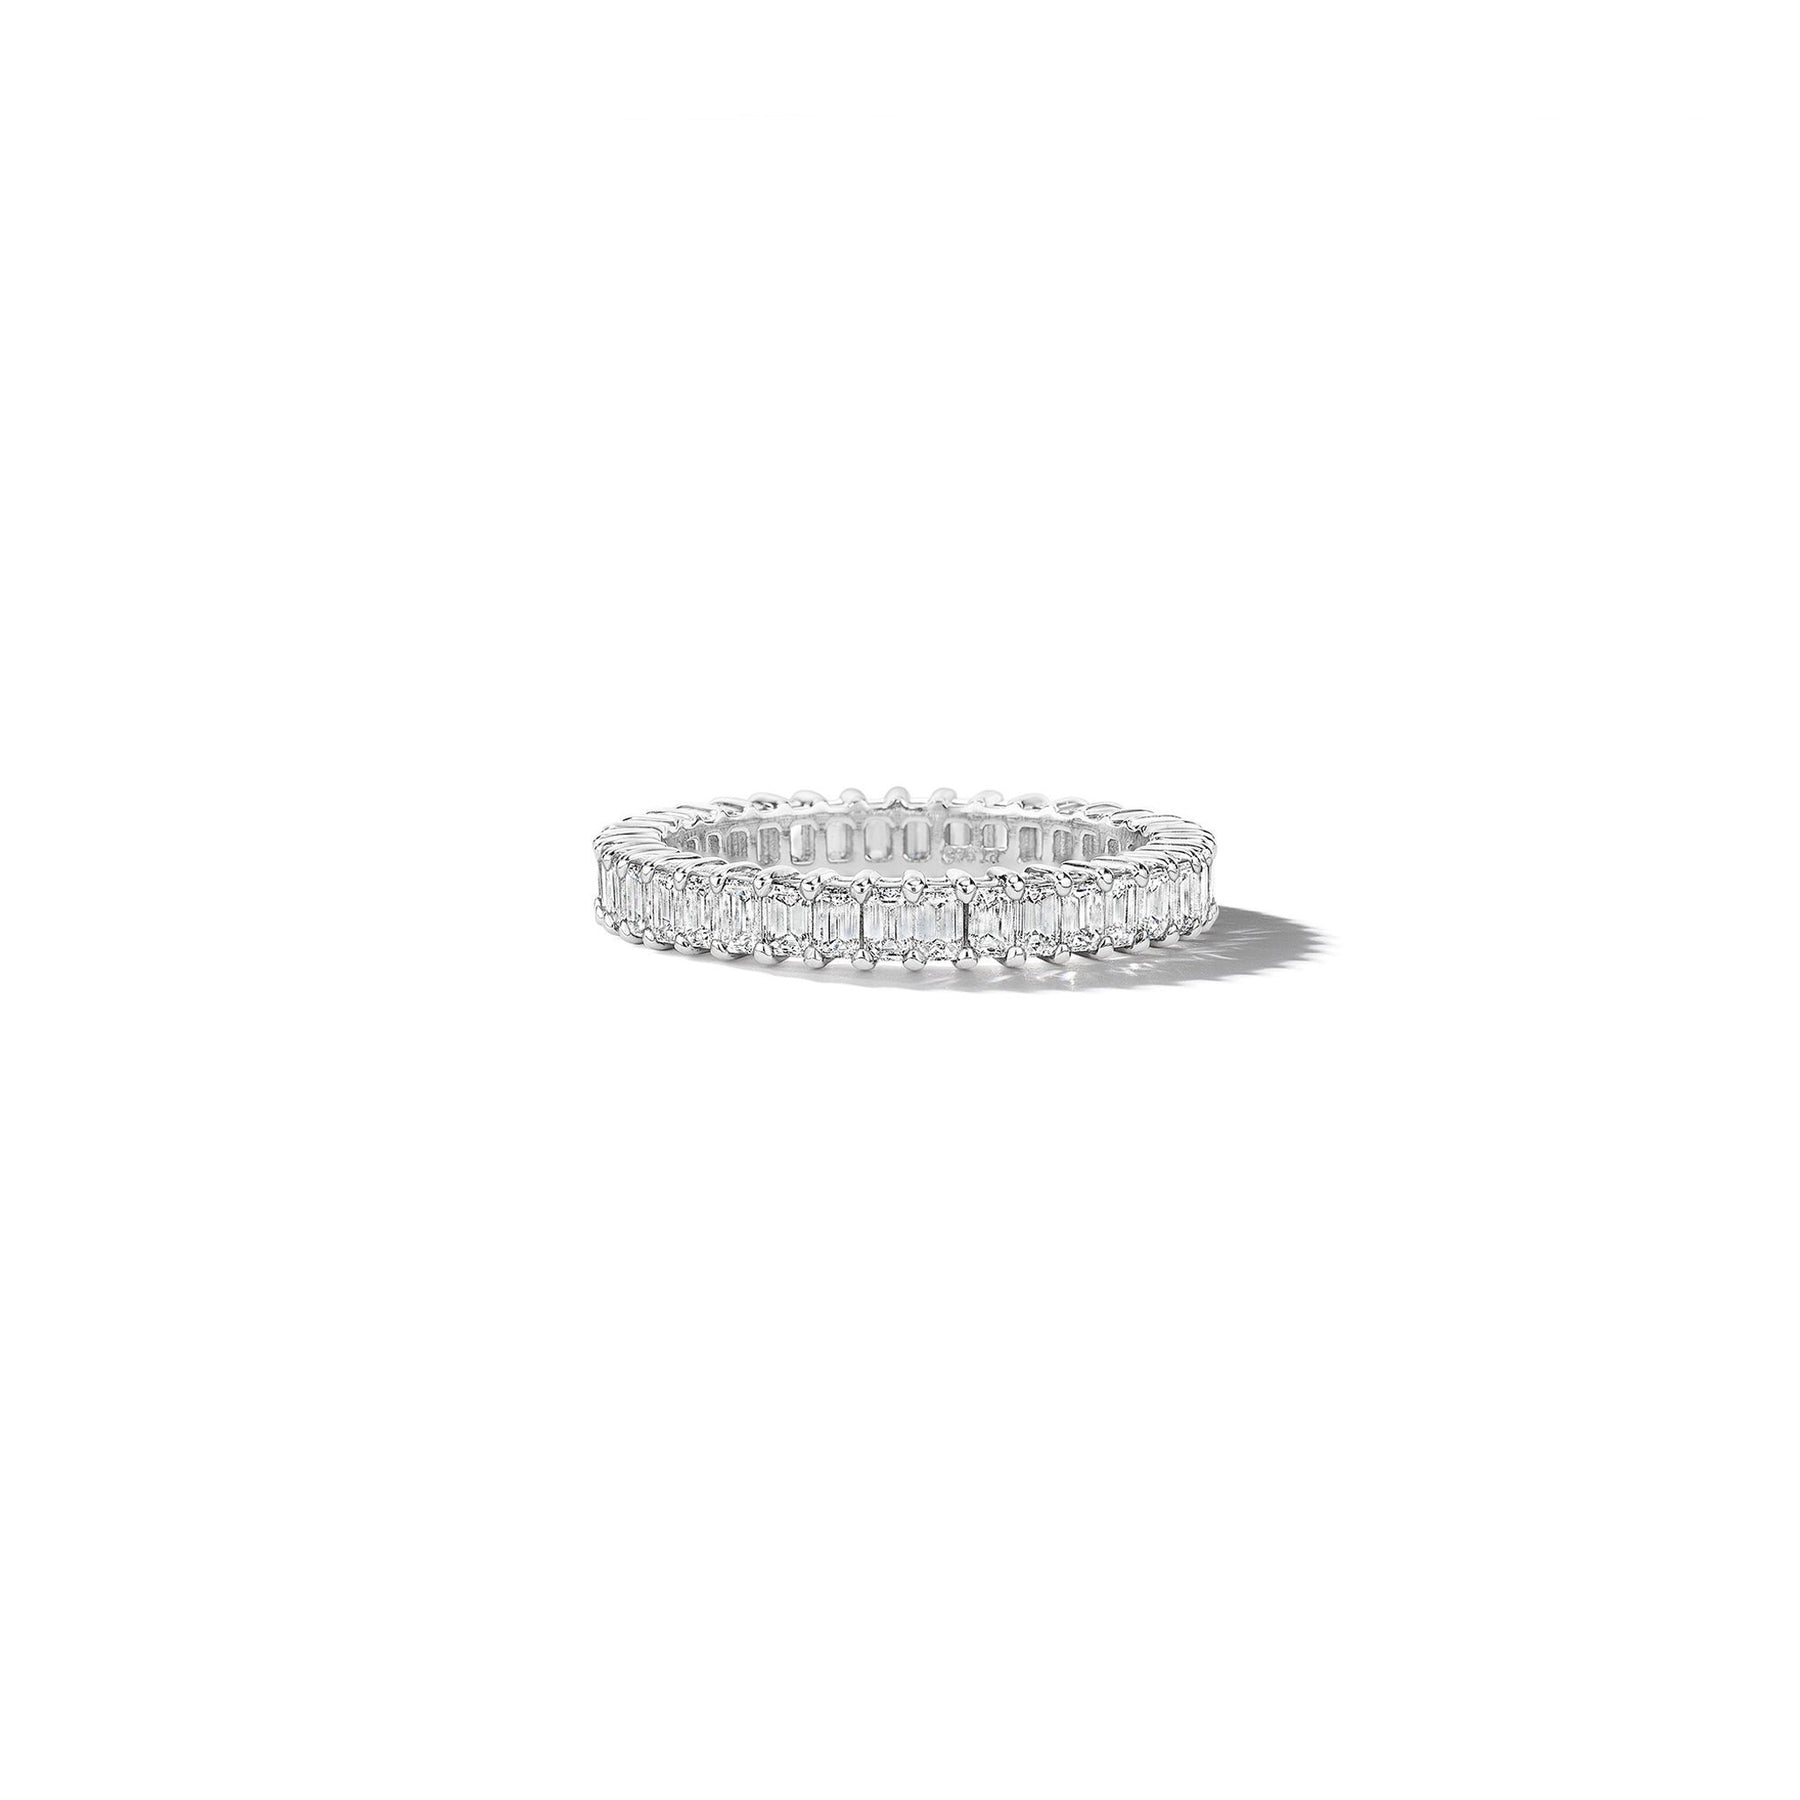 Mimi-So-Bridal-Wedding-Band-Emerald-Cut-Diamond-Eternity-Wedding-Band_Platinum